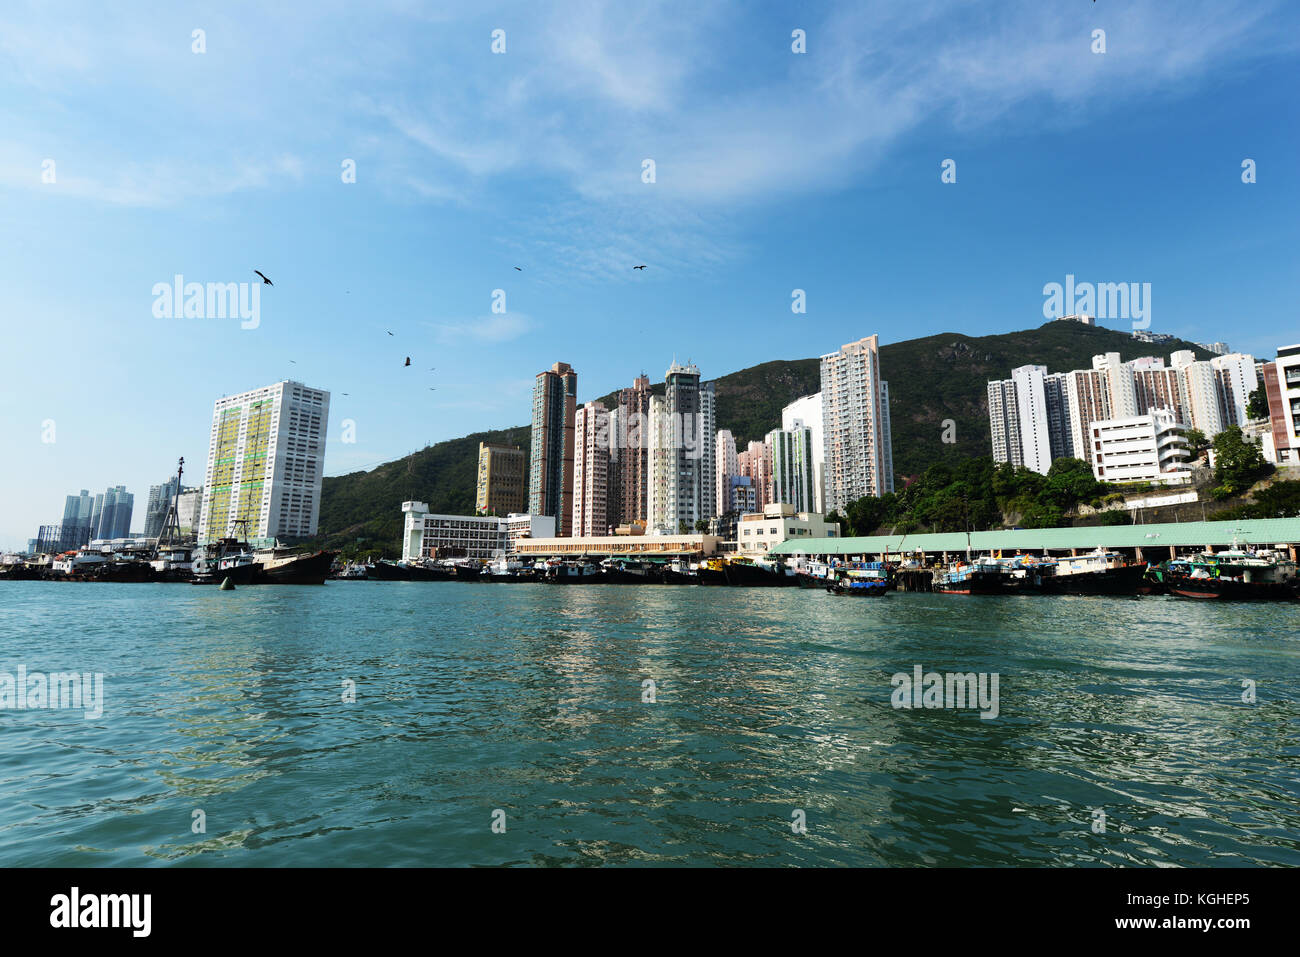 Aberdeen harbour in Hong Kong. - Stock Image